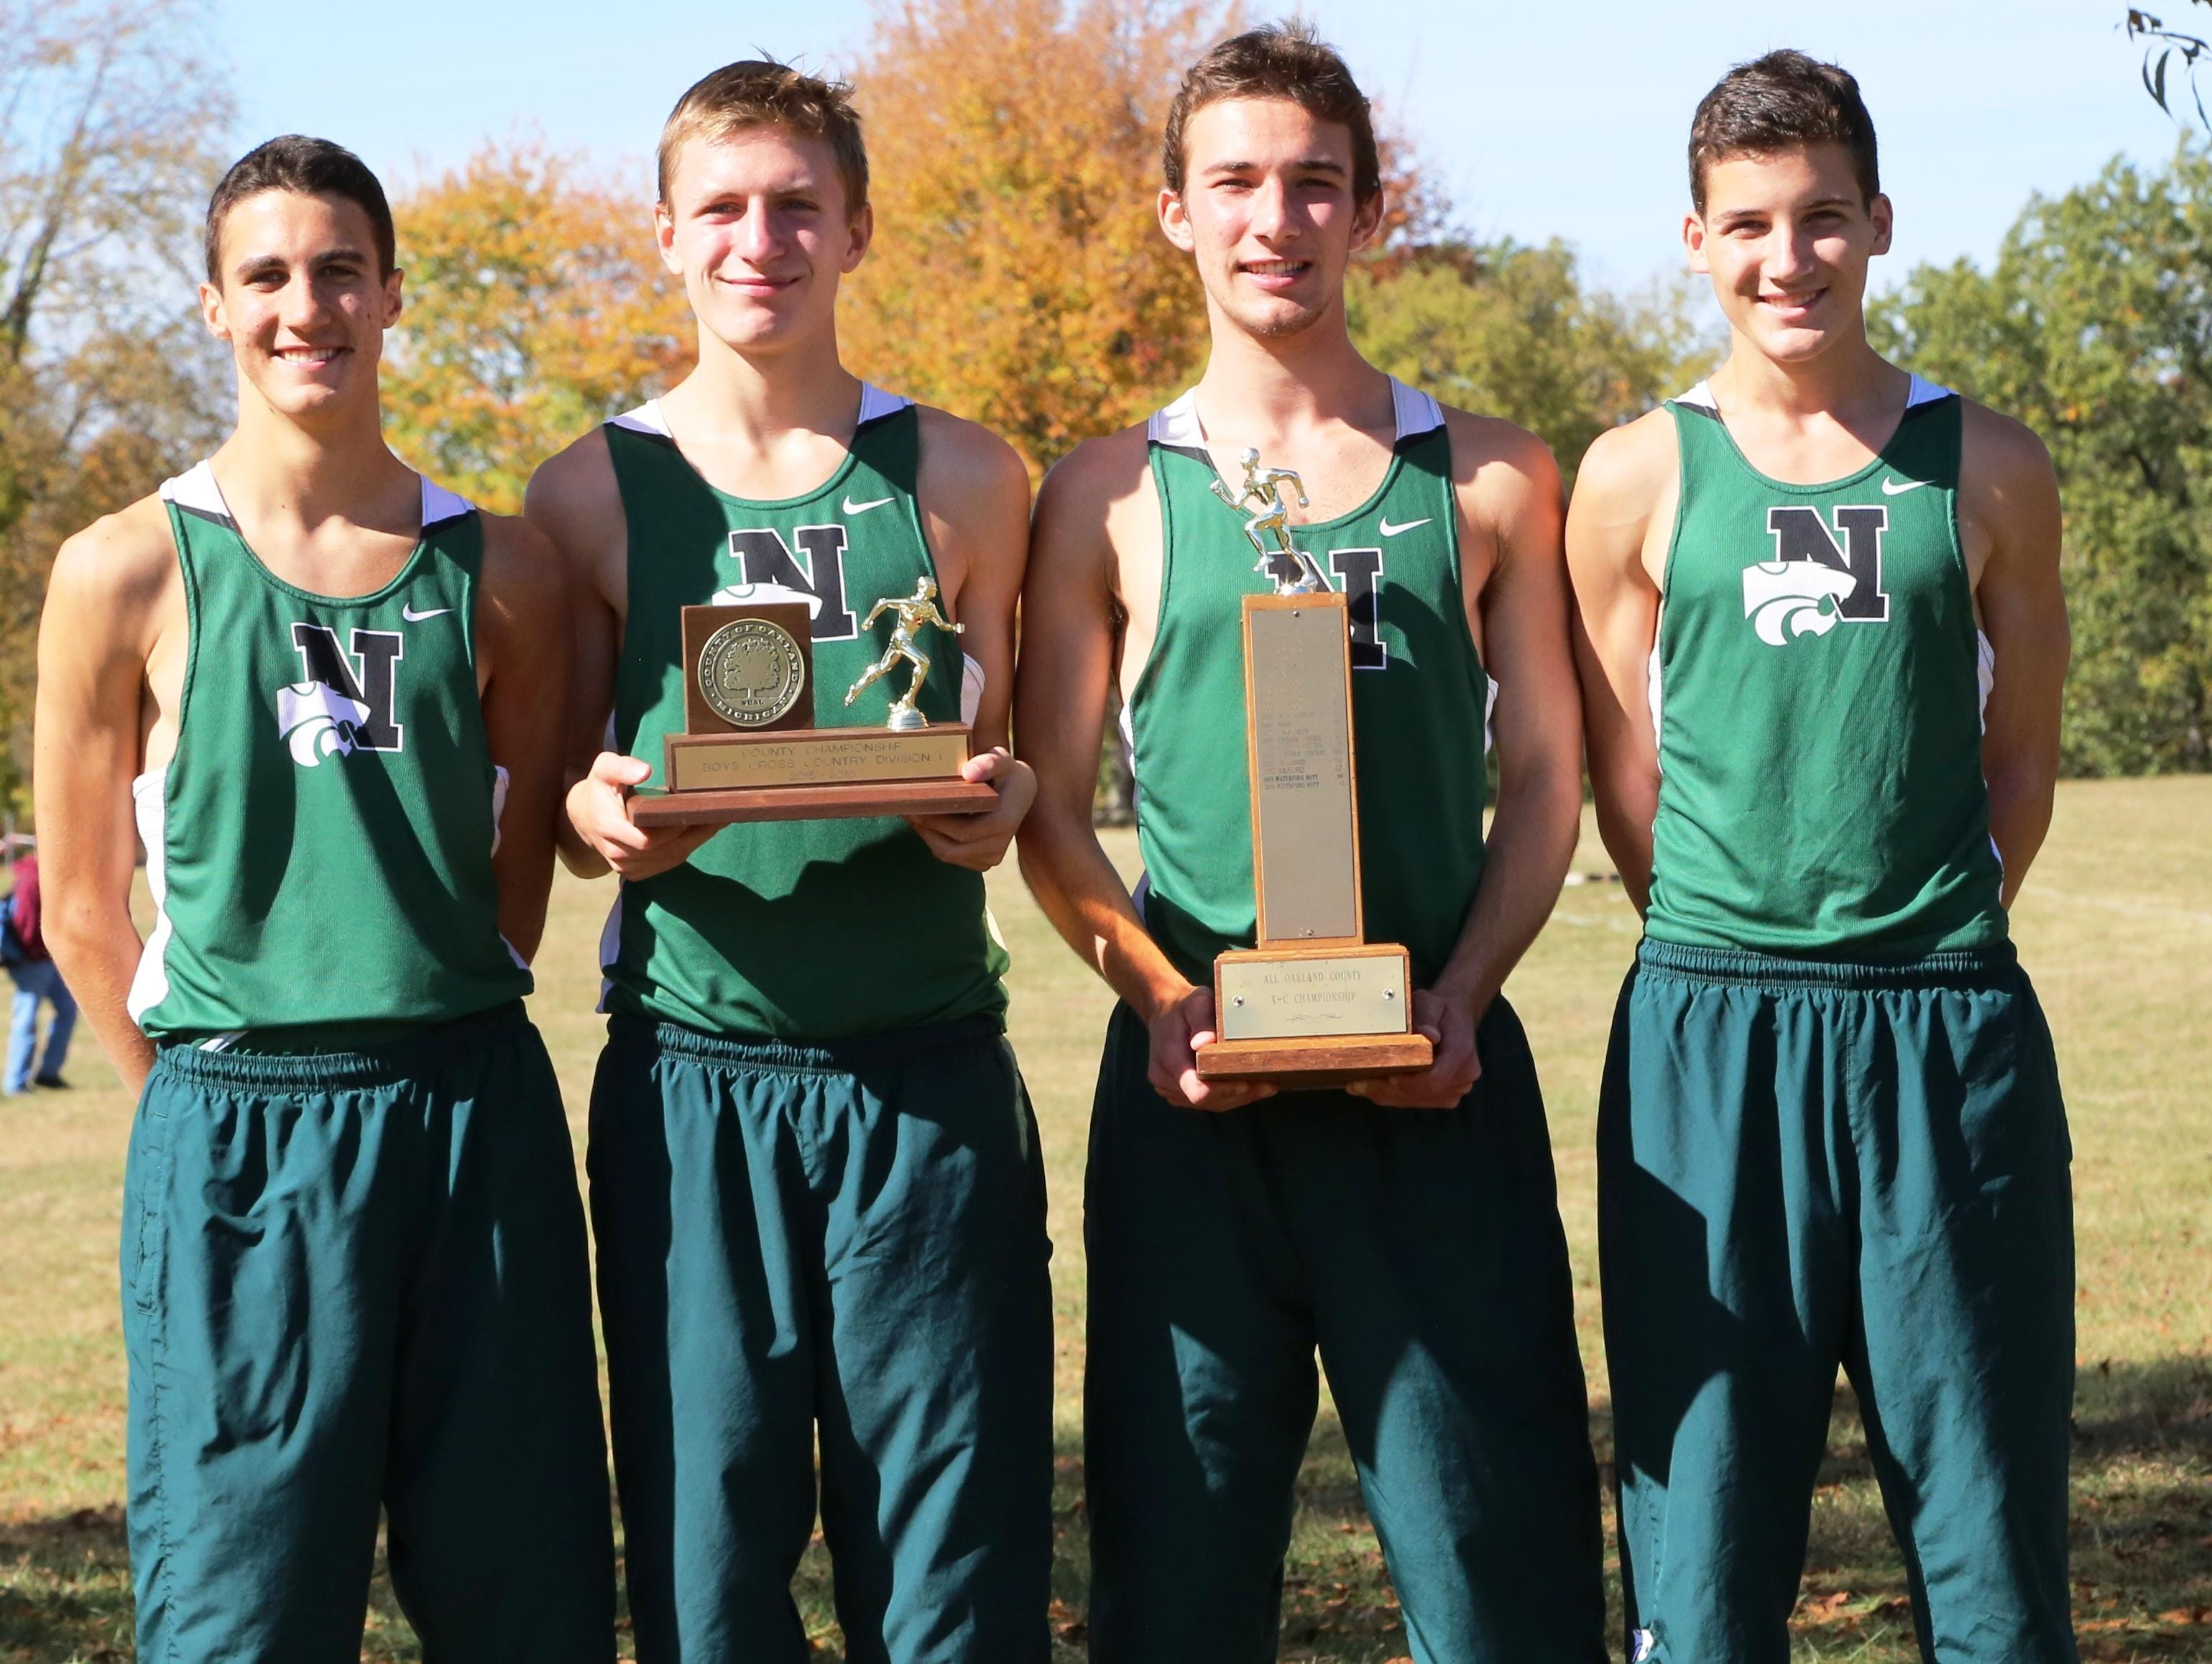 Novi's All-County runners included (from left) Scott MacPherson, Gabe Mudel, Joost Plaetinck and John Landy.